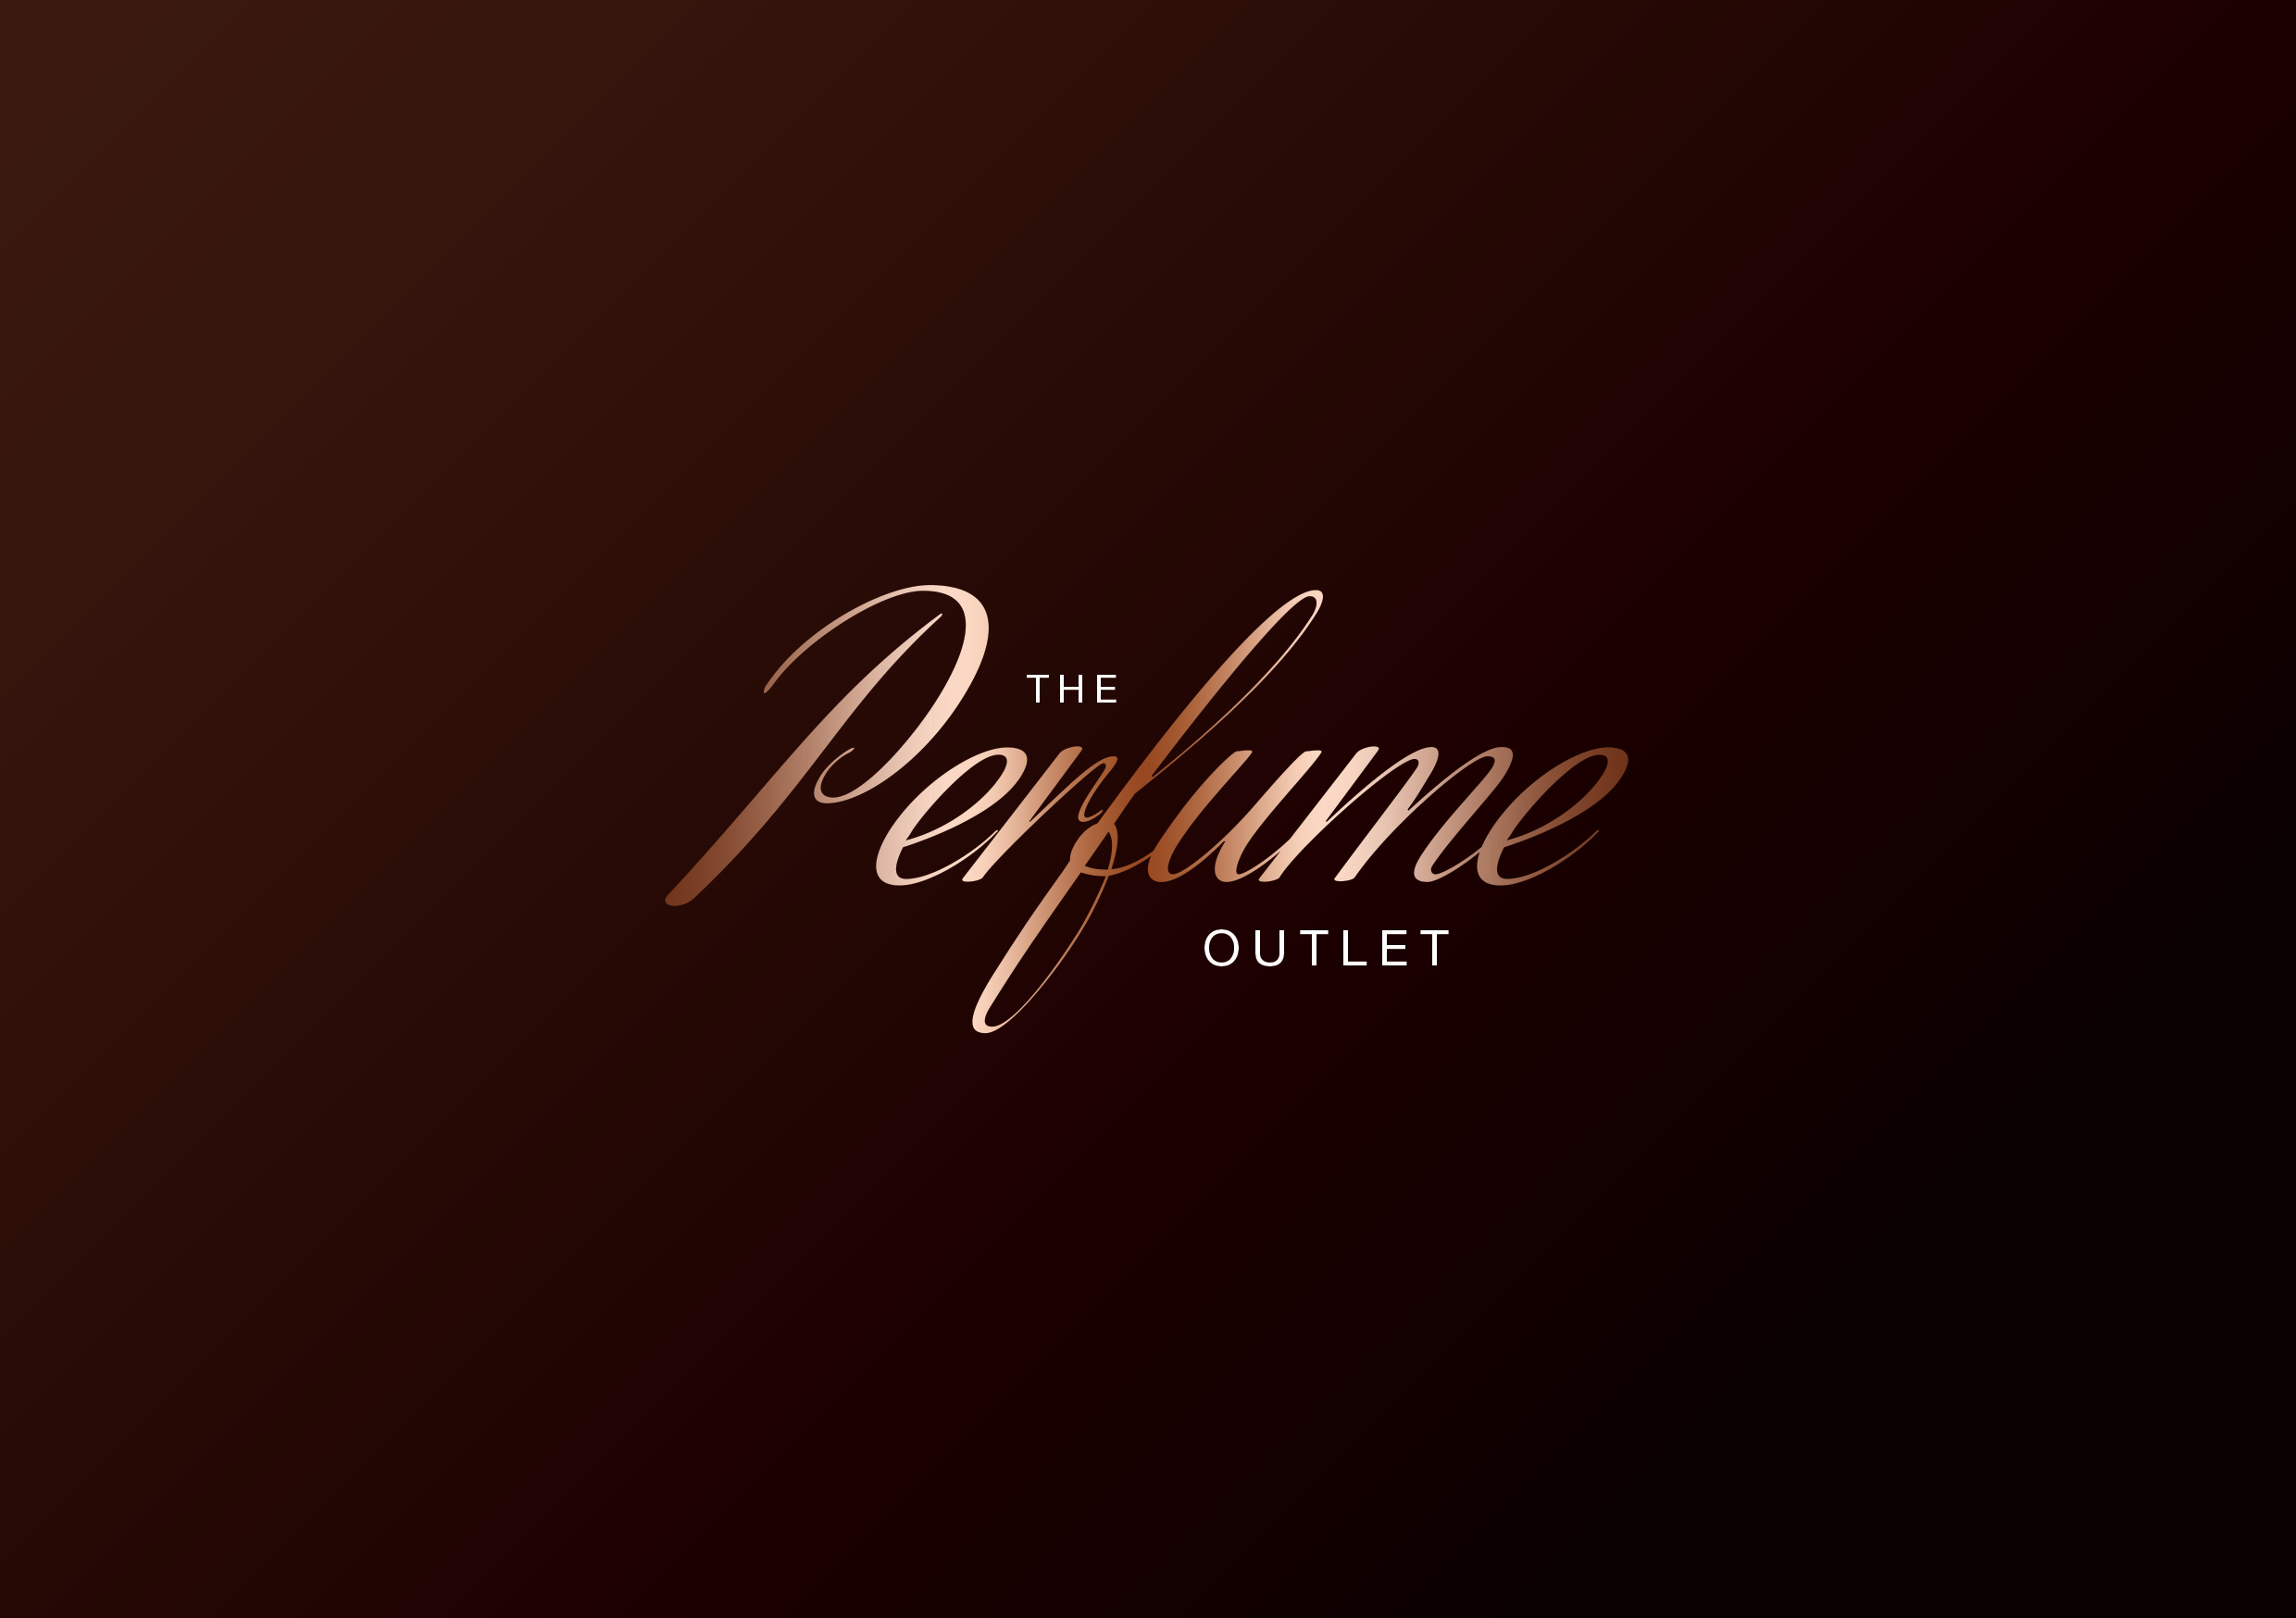 The Perfume Outlet